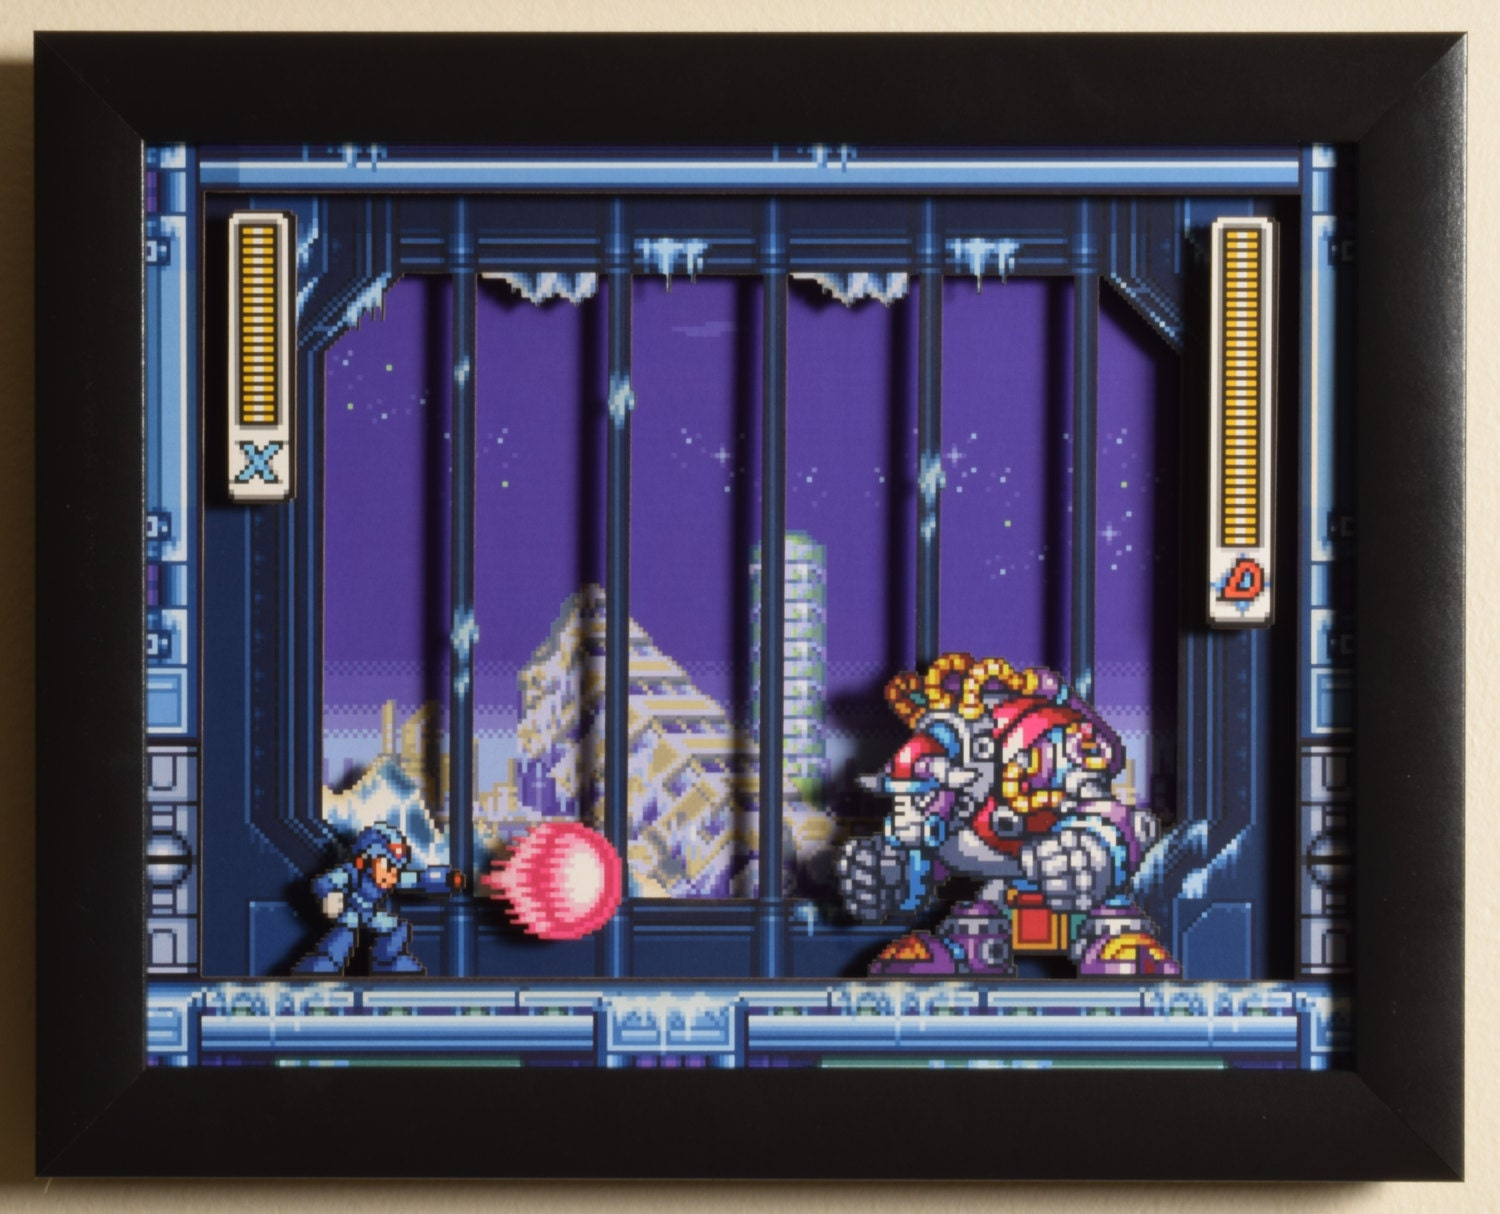 Mega Man X3 Snes Blizzard Buffalo 3d Video